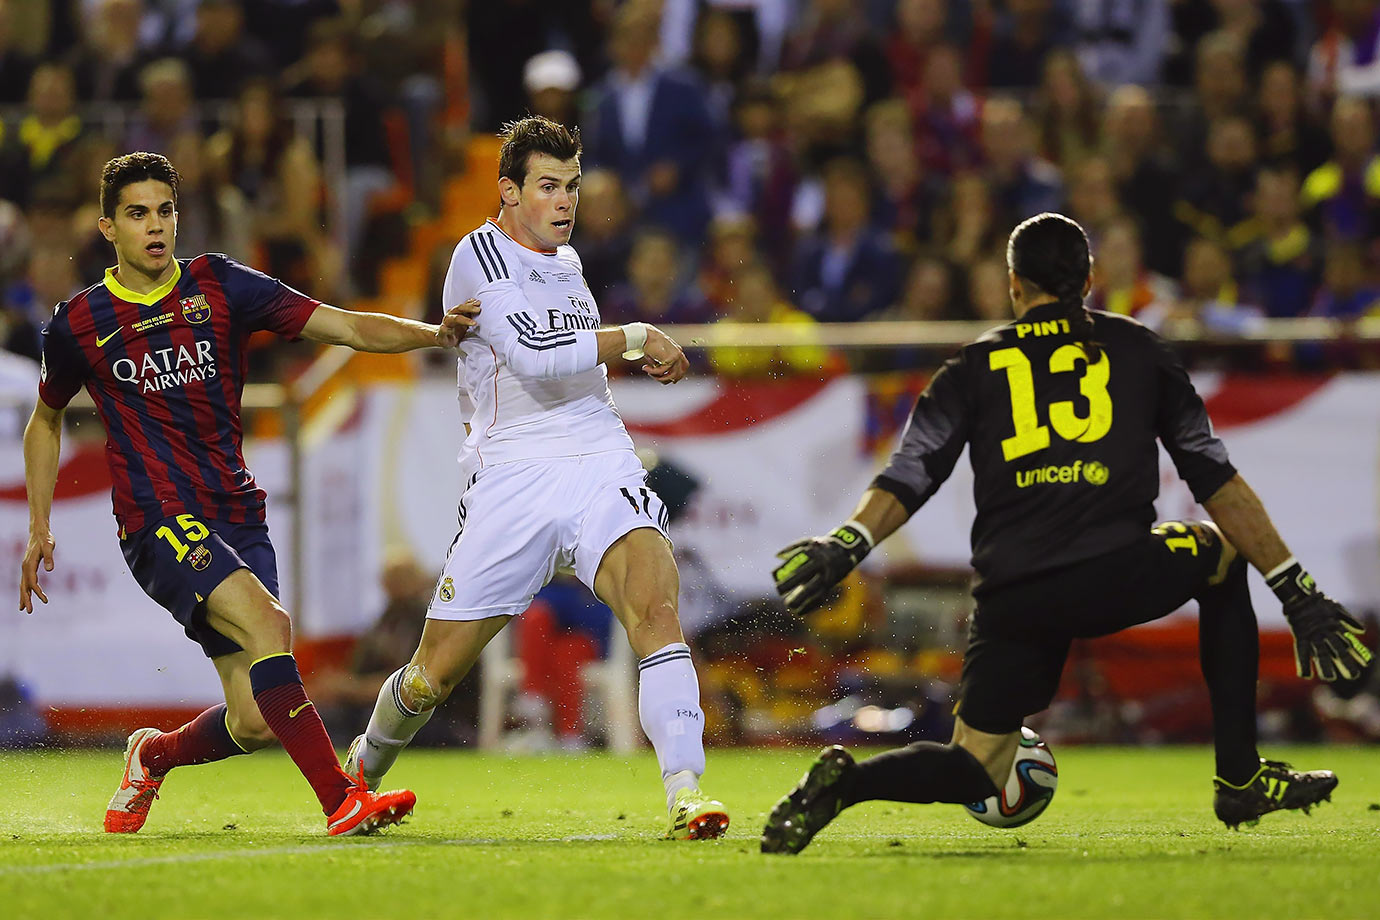 Gareth Bale emerges as the hero, scoring the winning goal in the Copa del Rey final in highlight-reel fashion.